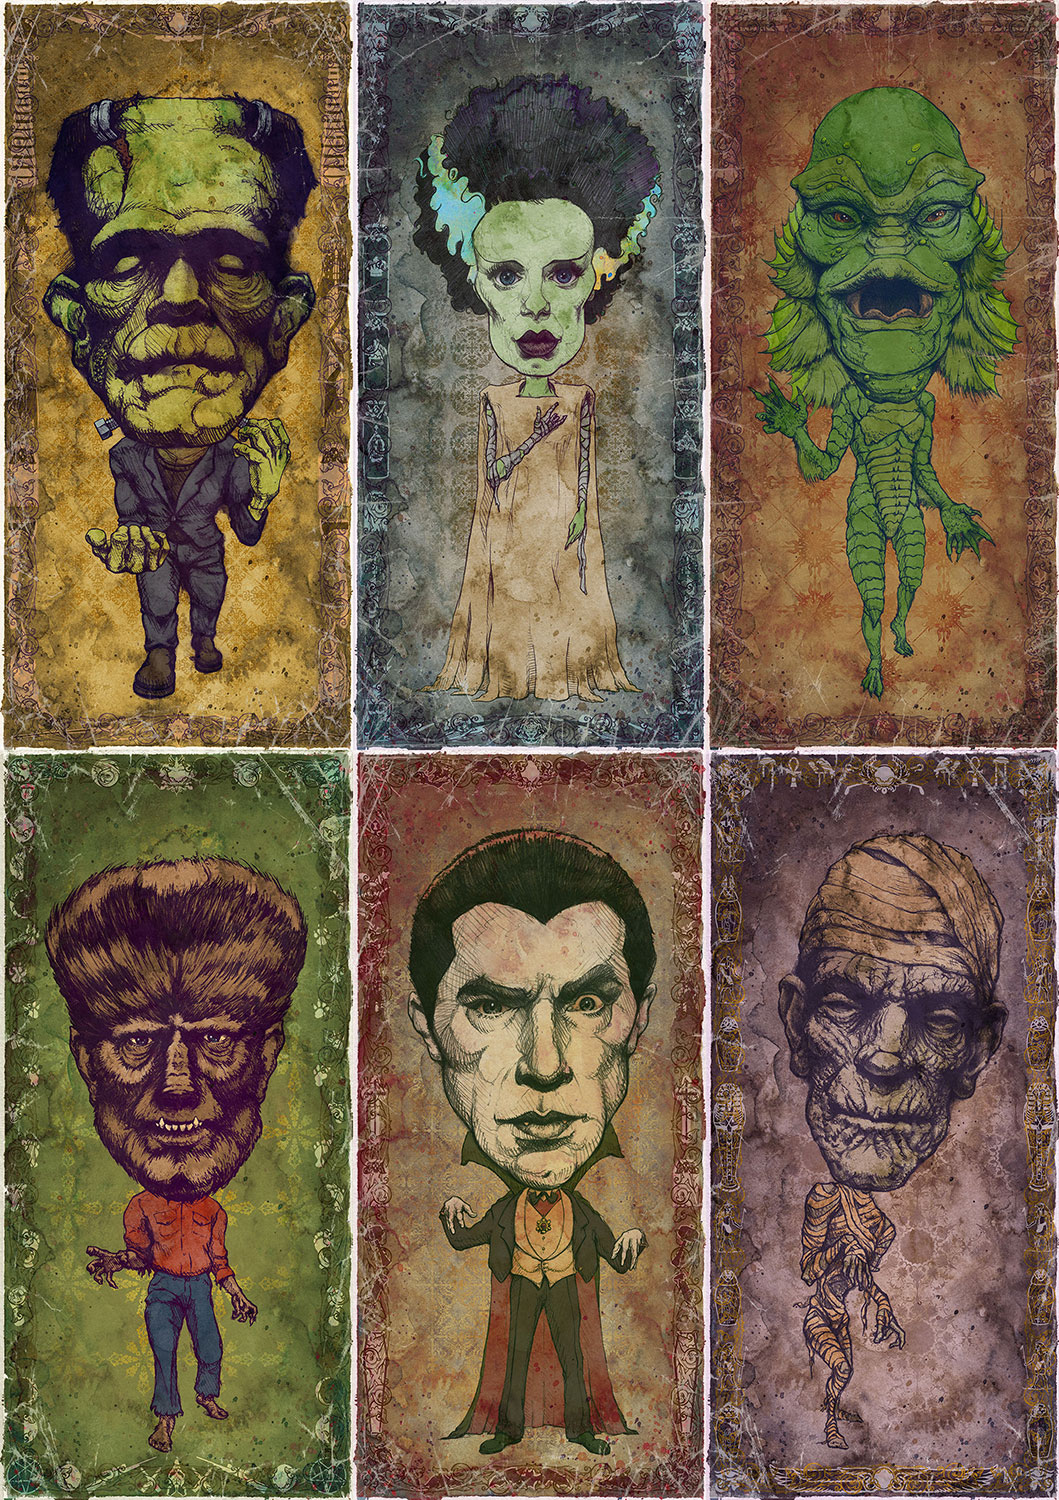 "Set of 6 Classic Monster Art Prints    6 individual 9"" x 18"" Prints    Each signed and numbered on archival paper    $116 ($10 Savings!)    Click image to purchase"